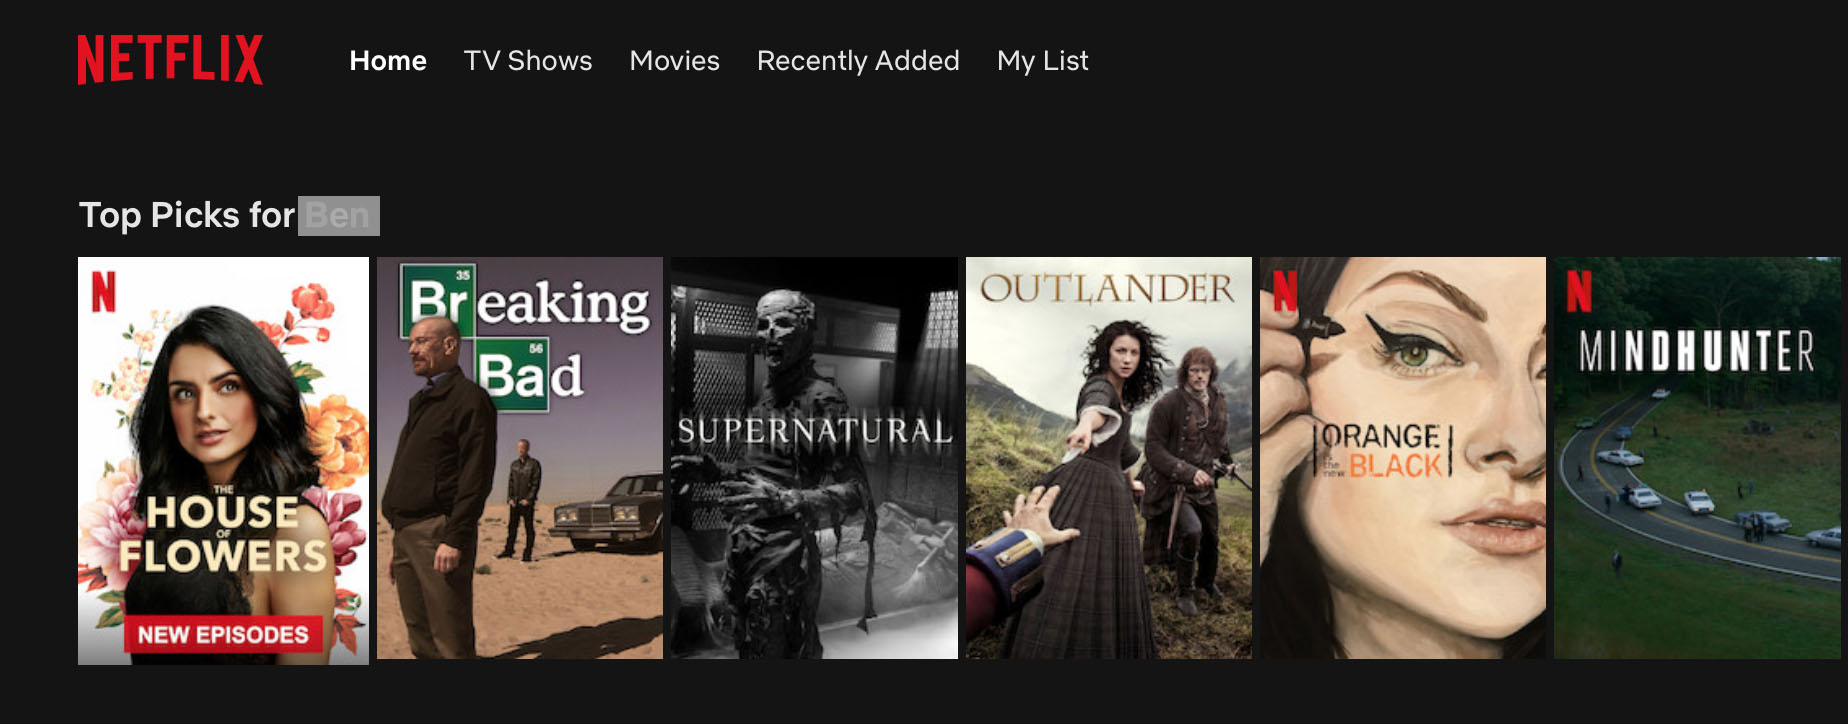 Netflix uses hyper-personalization to provide viewing suggestions to users based on their viewing history.